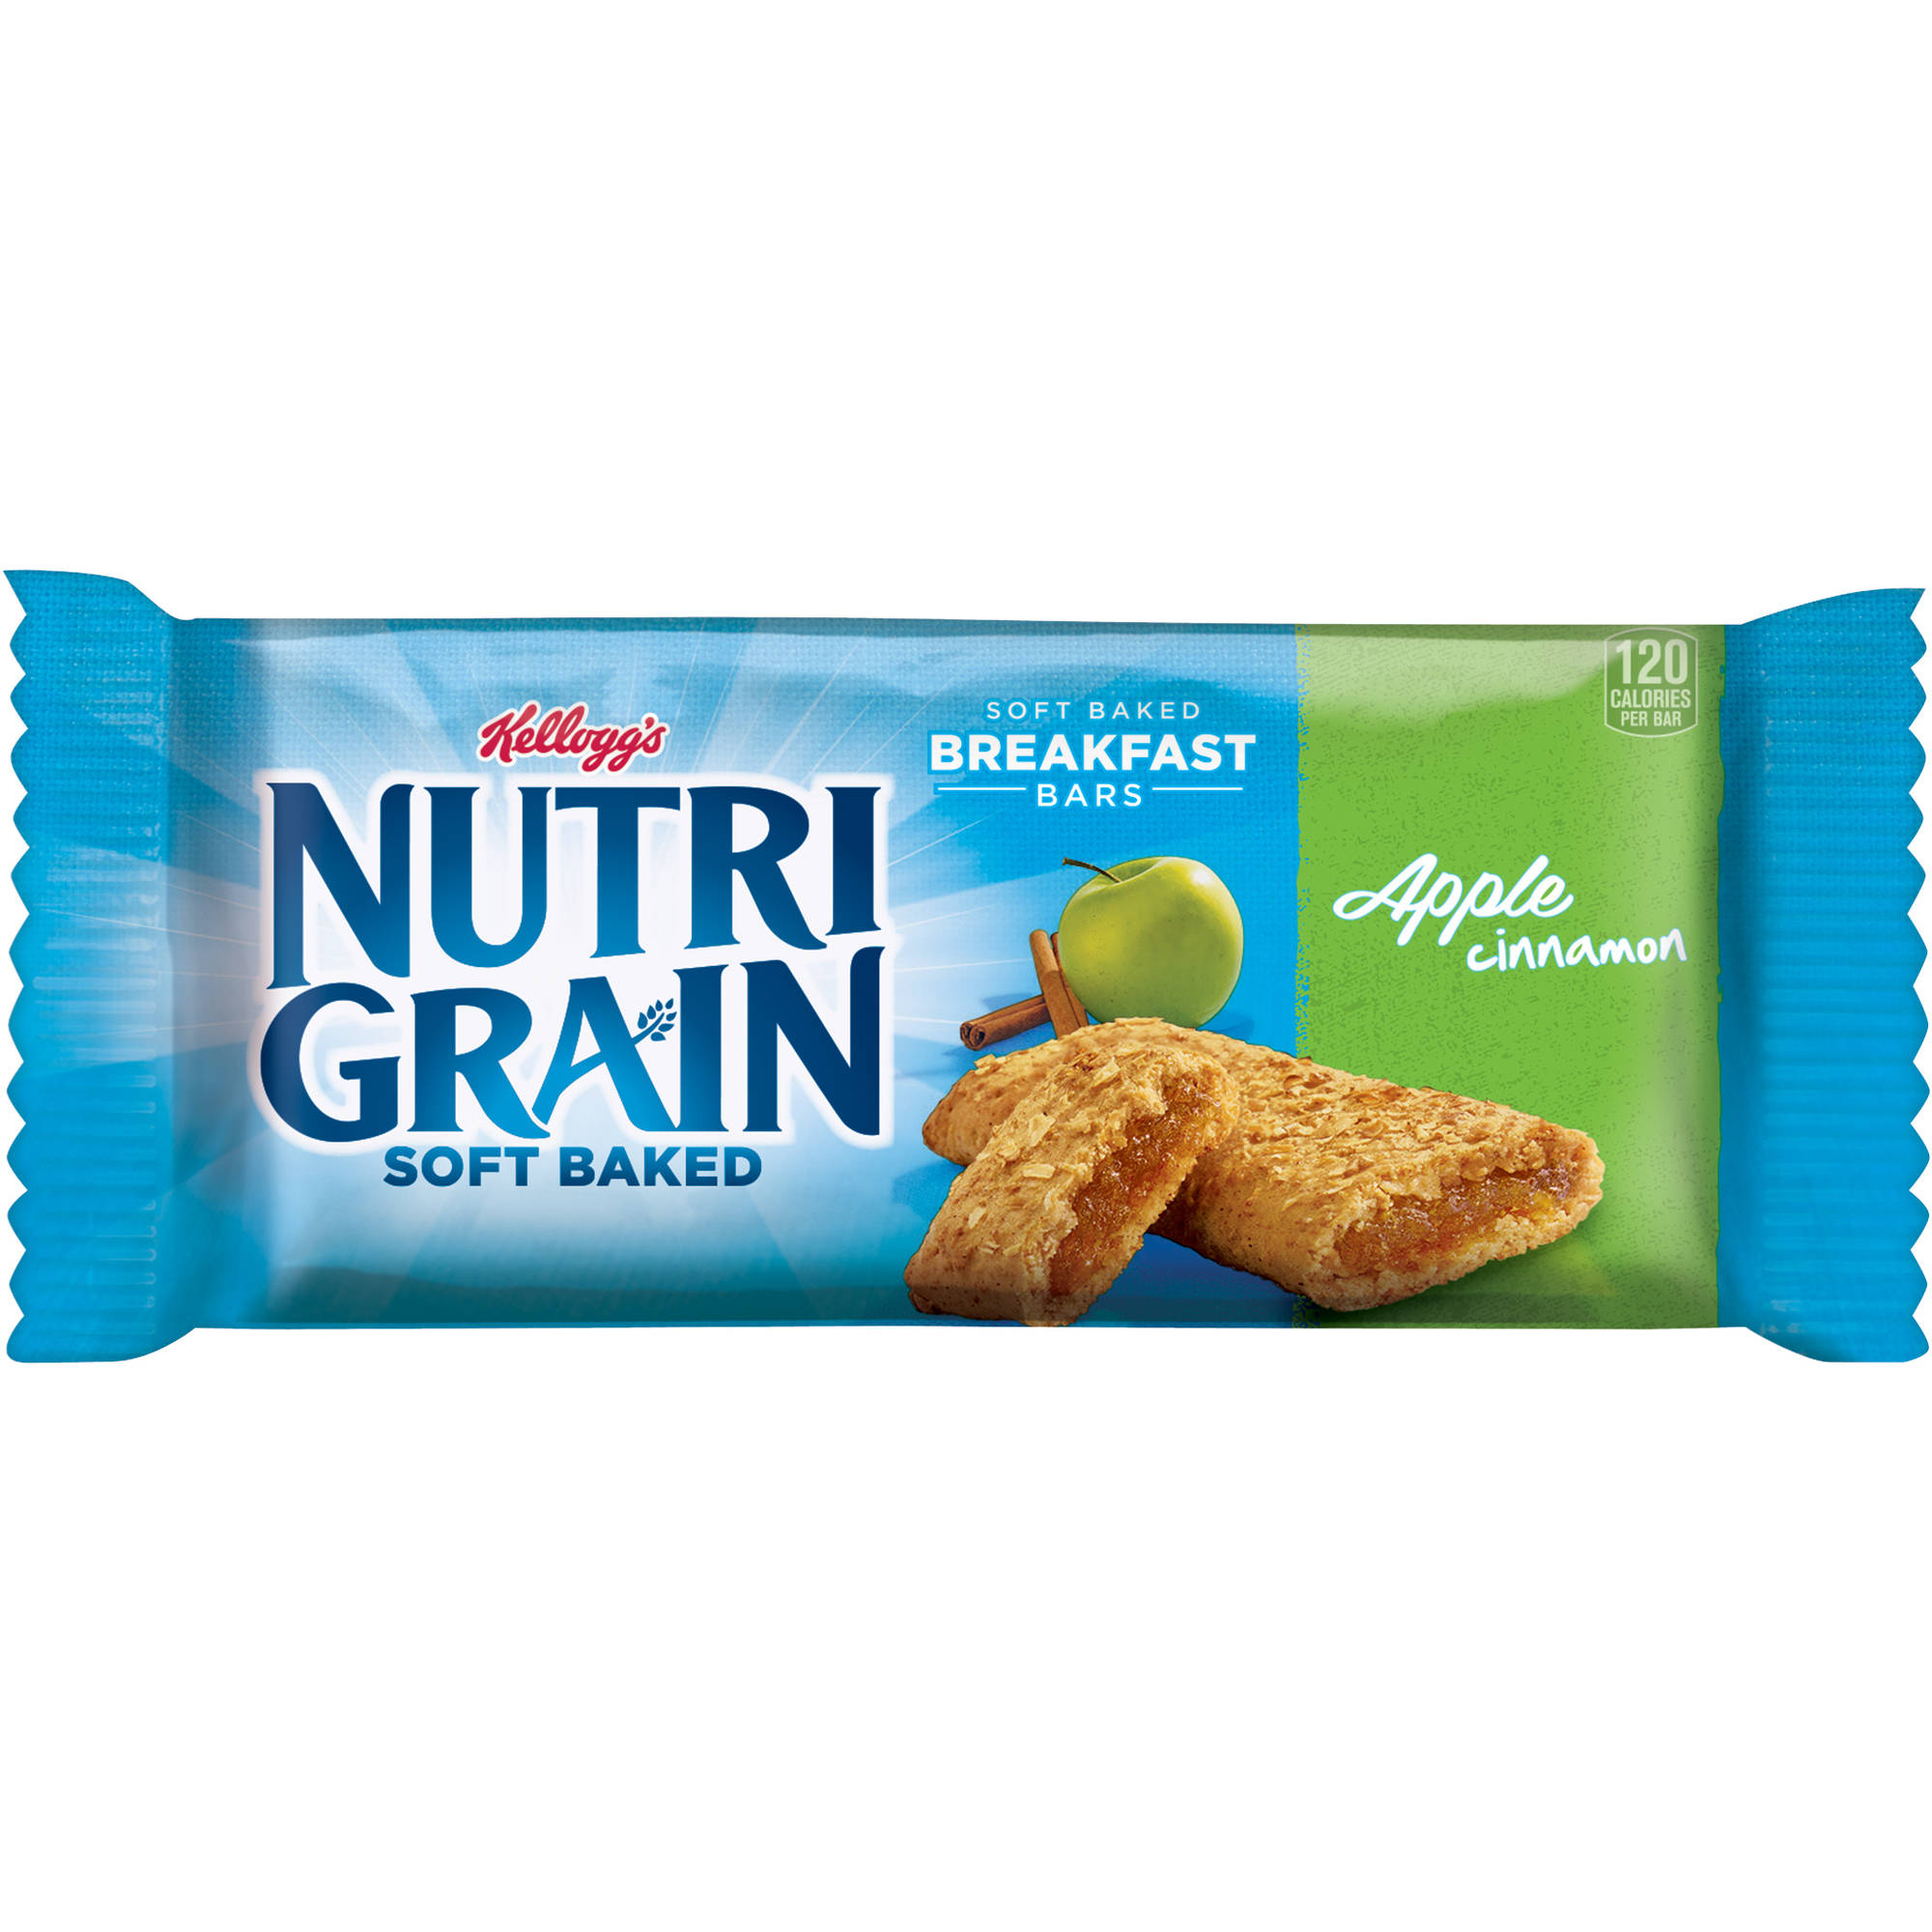 Kellogg's Nutri-Grain Soft Baked Breakfast Bars Apple Cinnamon, 1.3 OZ